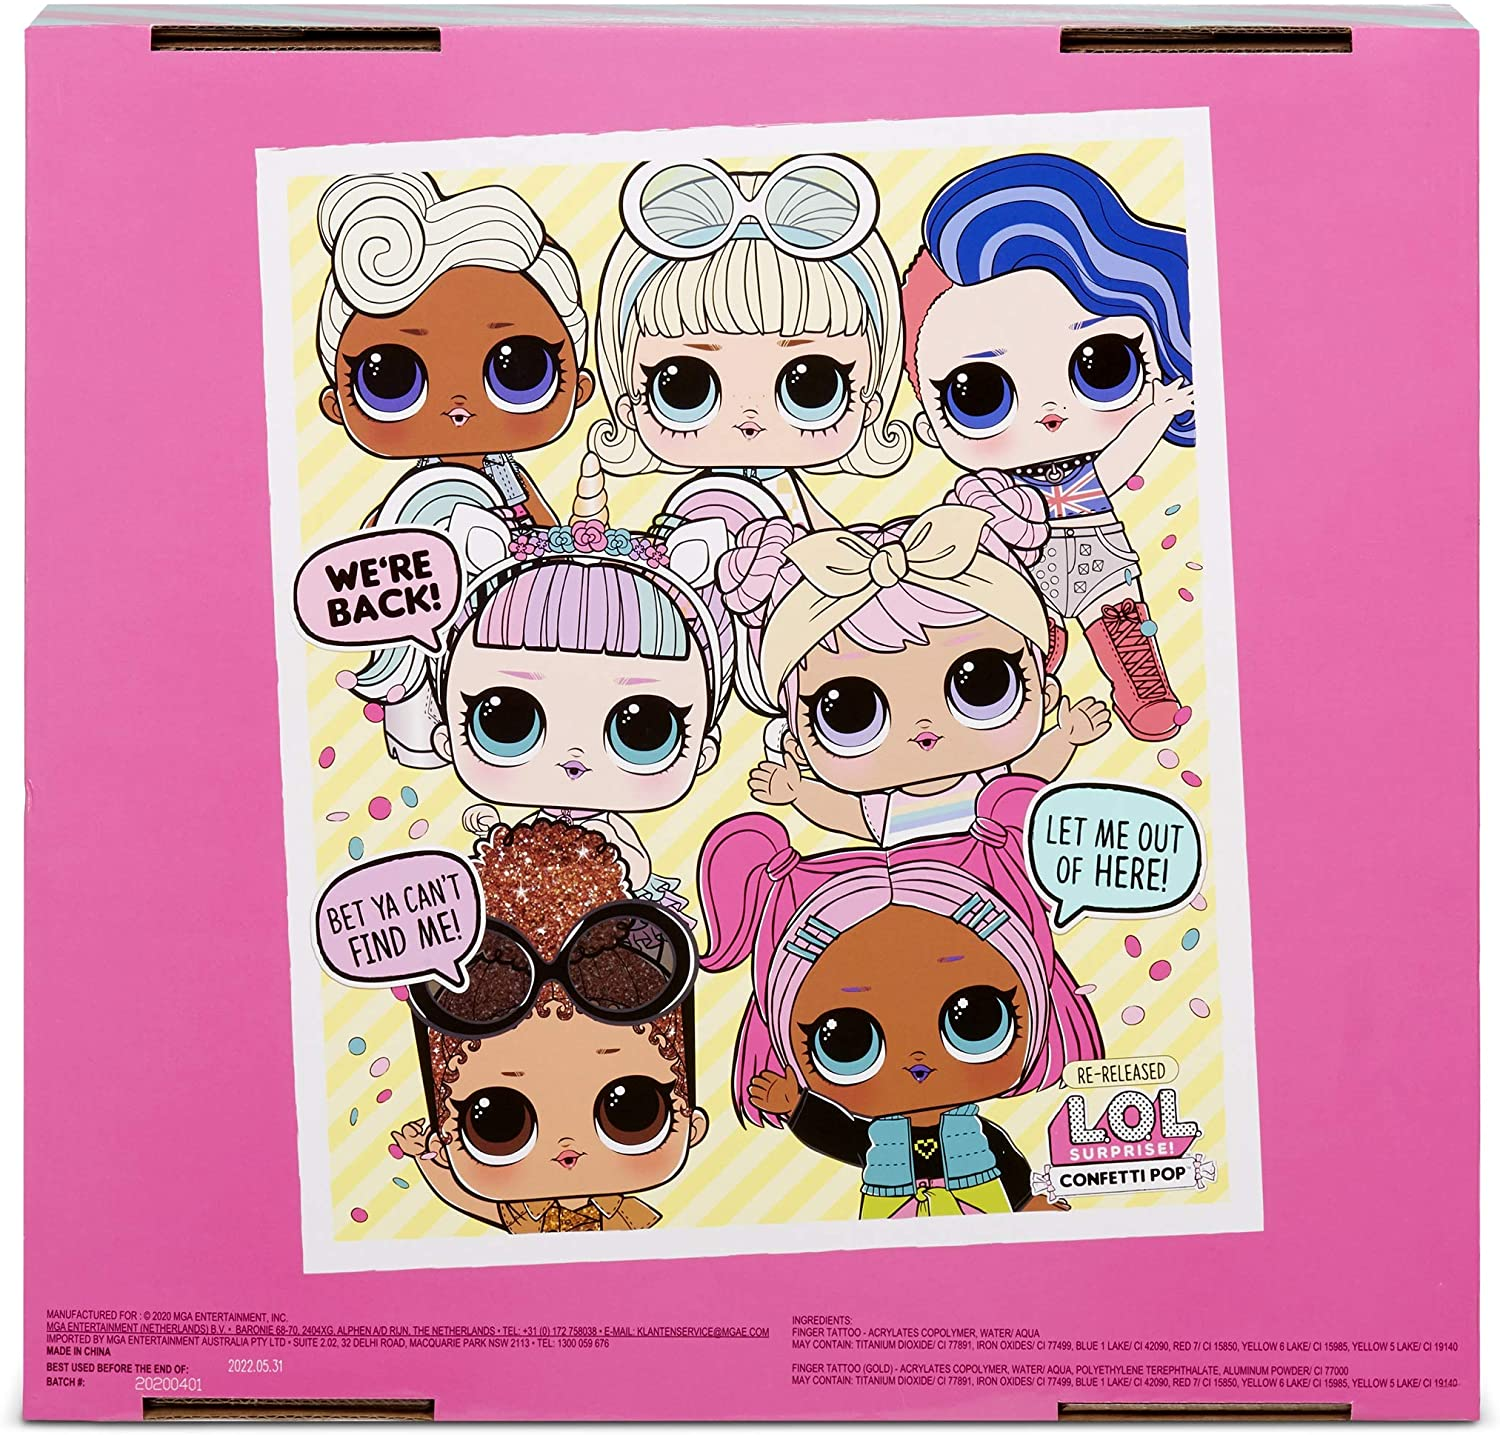 Lol Surprise Confetti Pop Re Release Is Now Available Online Youloveit Com